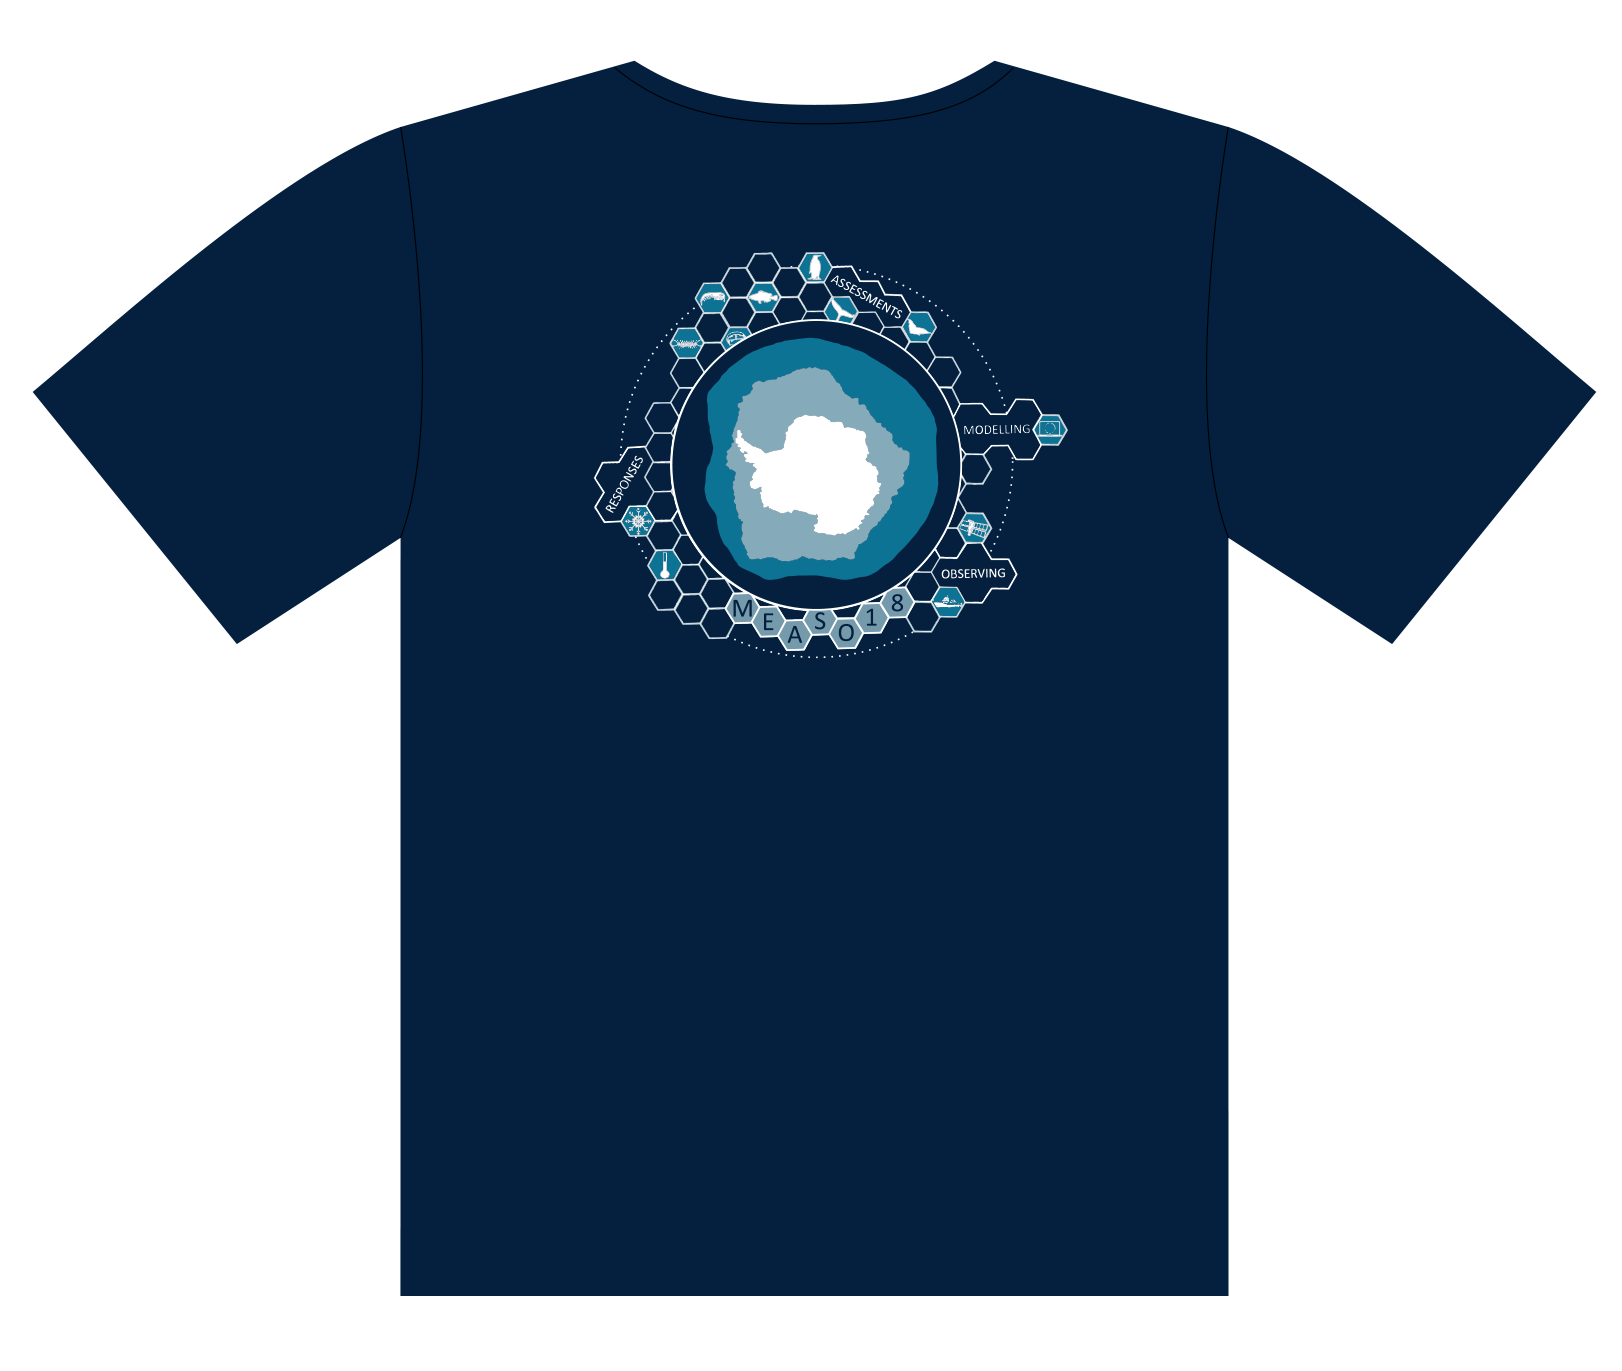 Please note that the pre-order for your MEASO 2018 t-shirt closed 22 March. You can still order a tshirt but you are not guaranteed your preferred size -